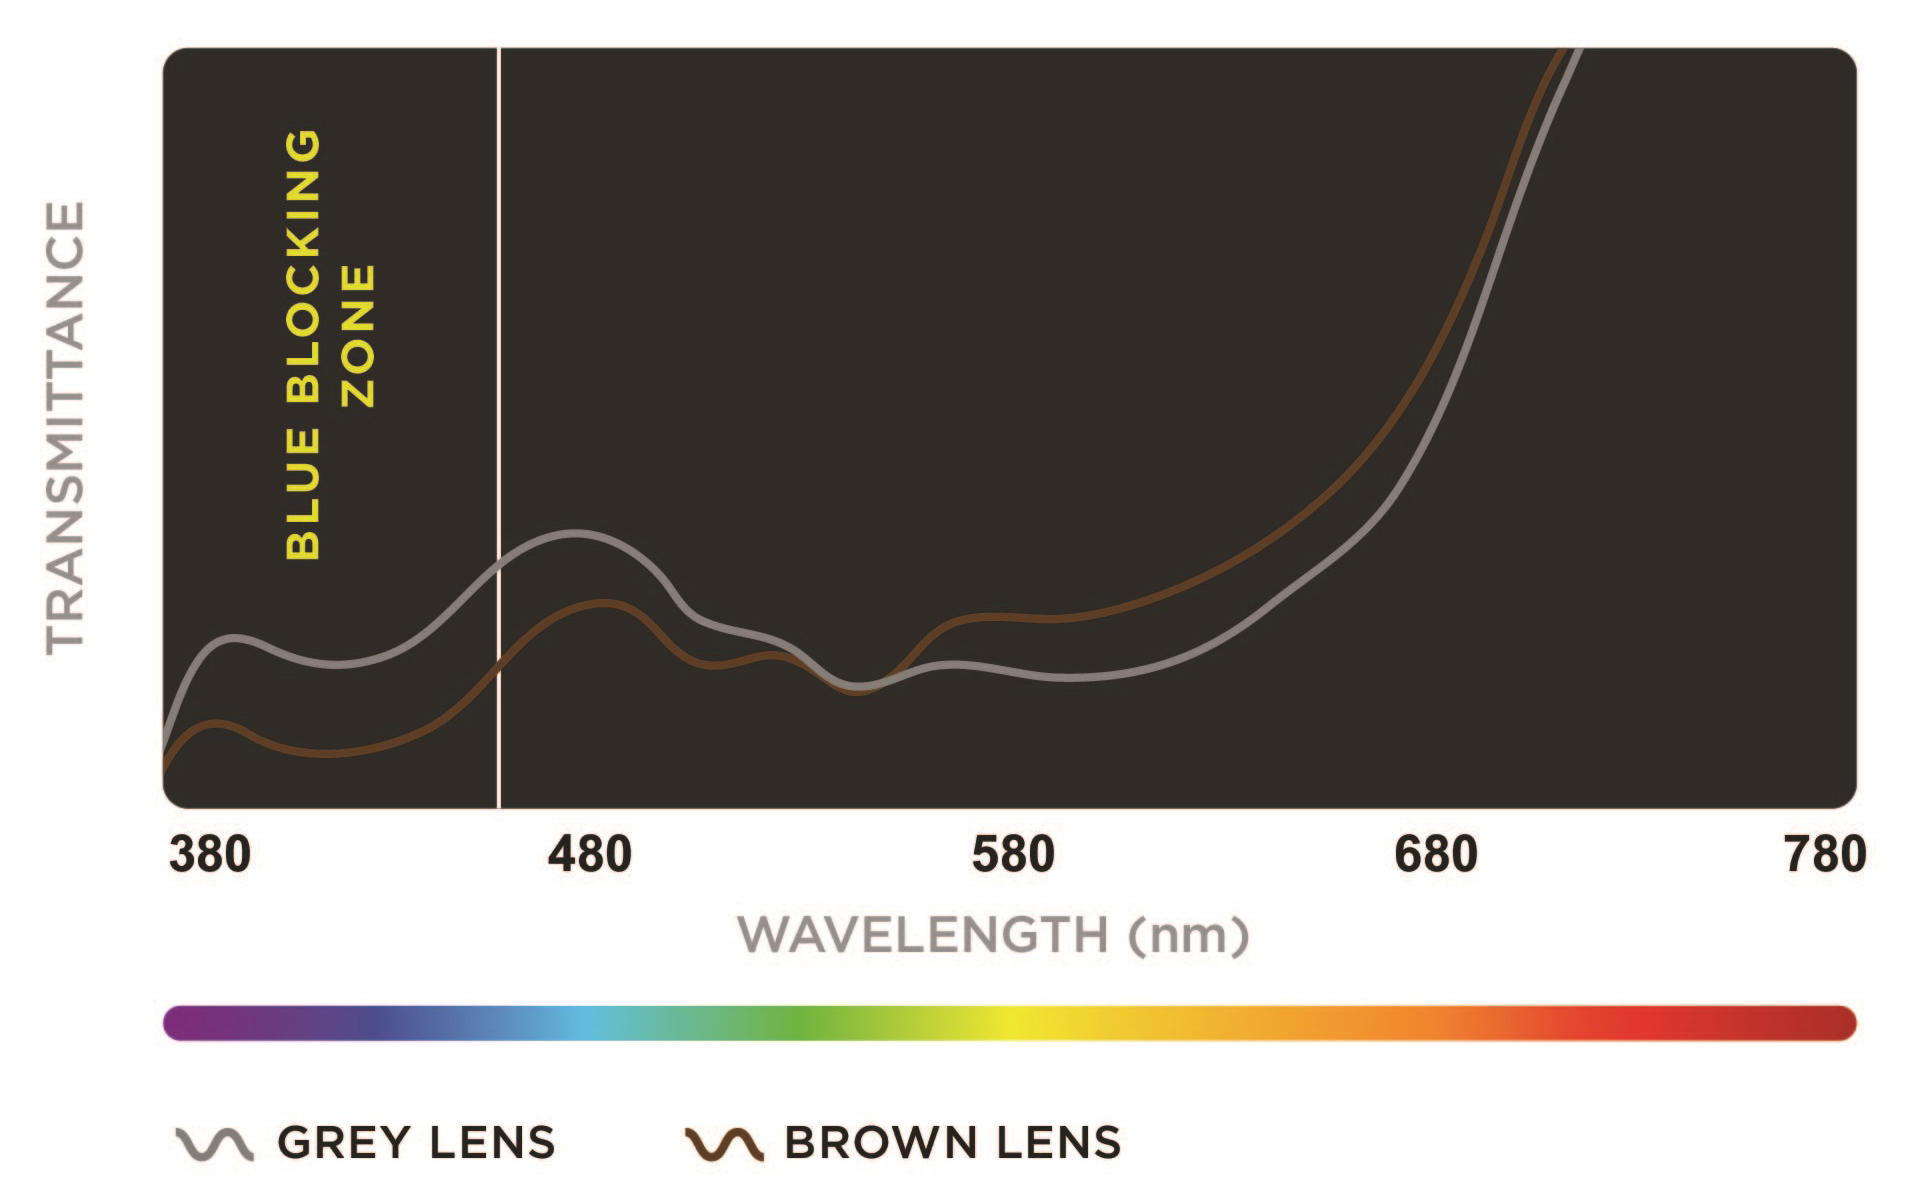 Sun lenses in brown and grey showing that, at equal photopic transmission (15% Tv), the brown lens filters more blue light than the grey lens, as it contains more yellow dyes in its formulation